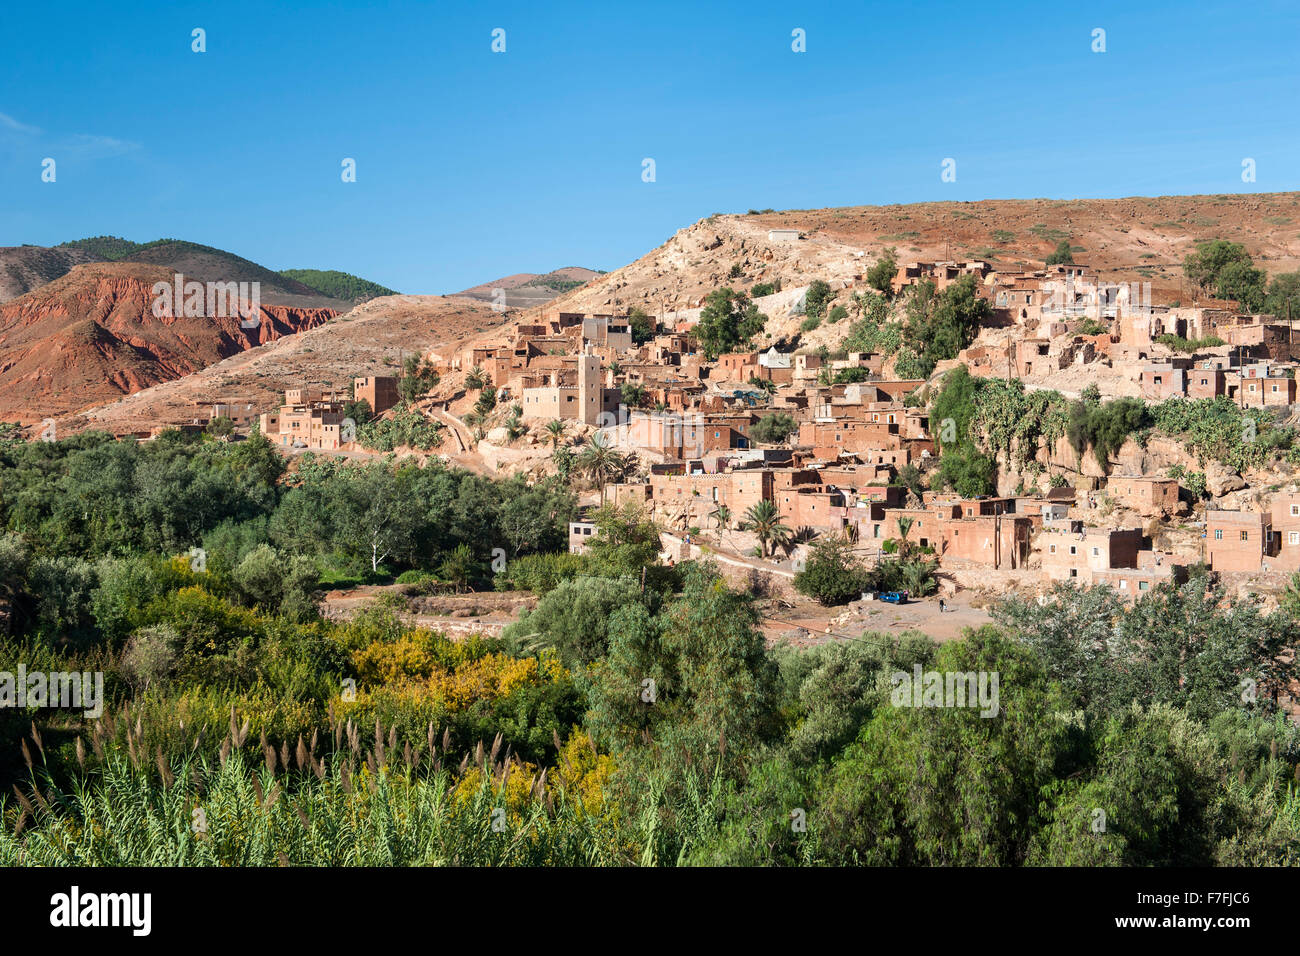 Village of Asni in the foothills of the Atlas mountains in Morocco. - Stock Image